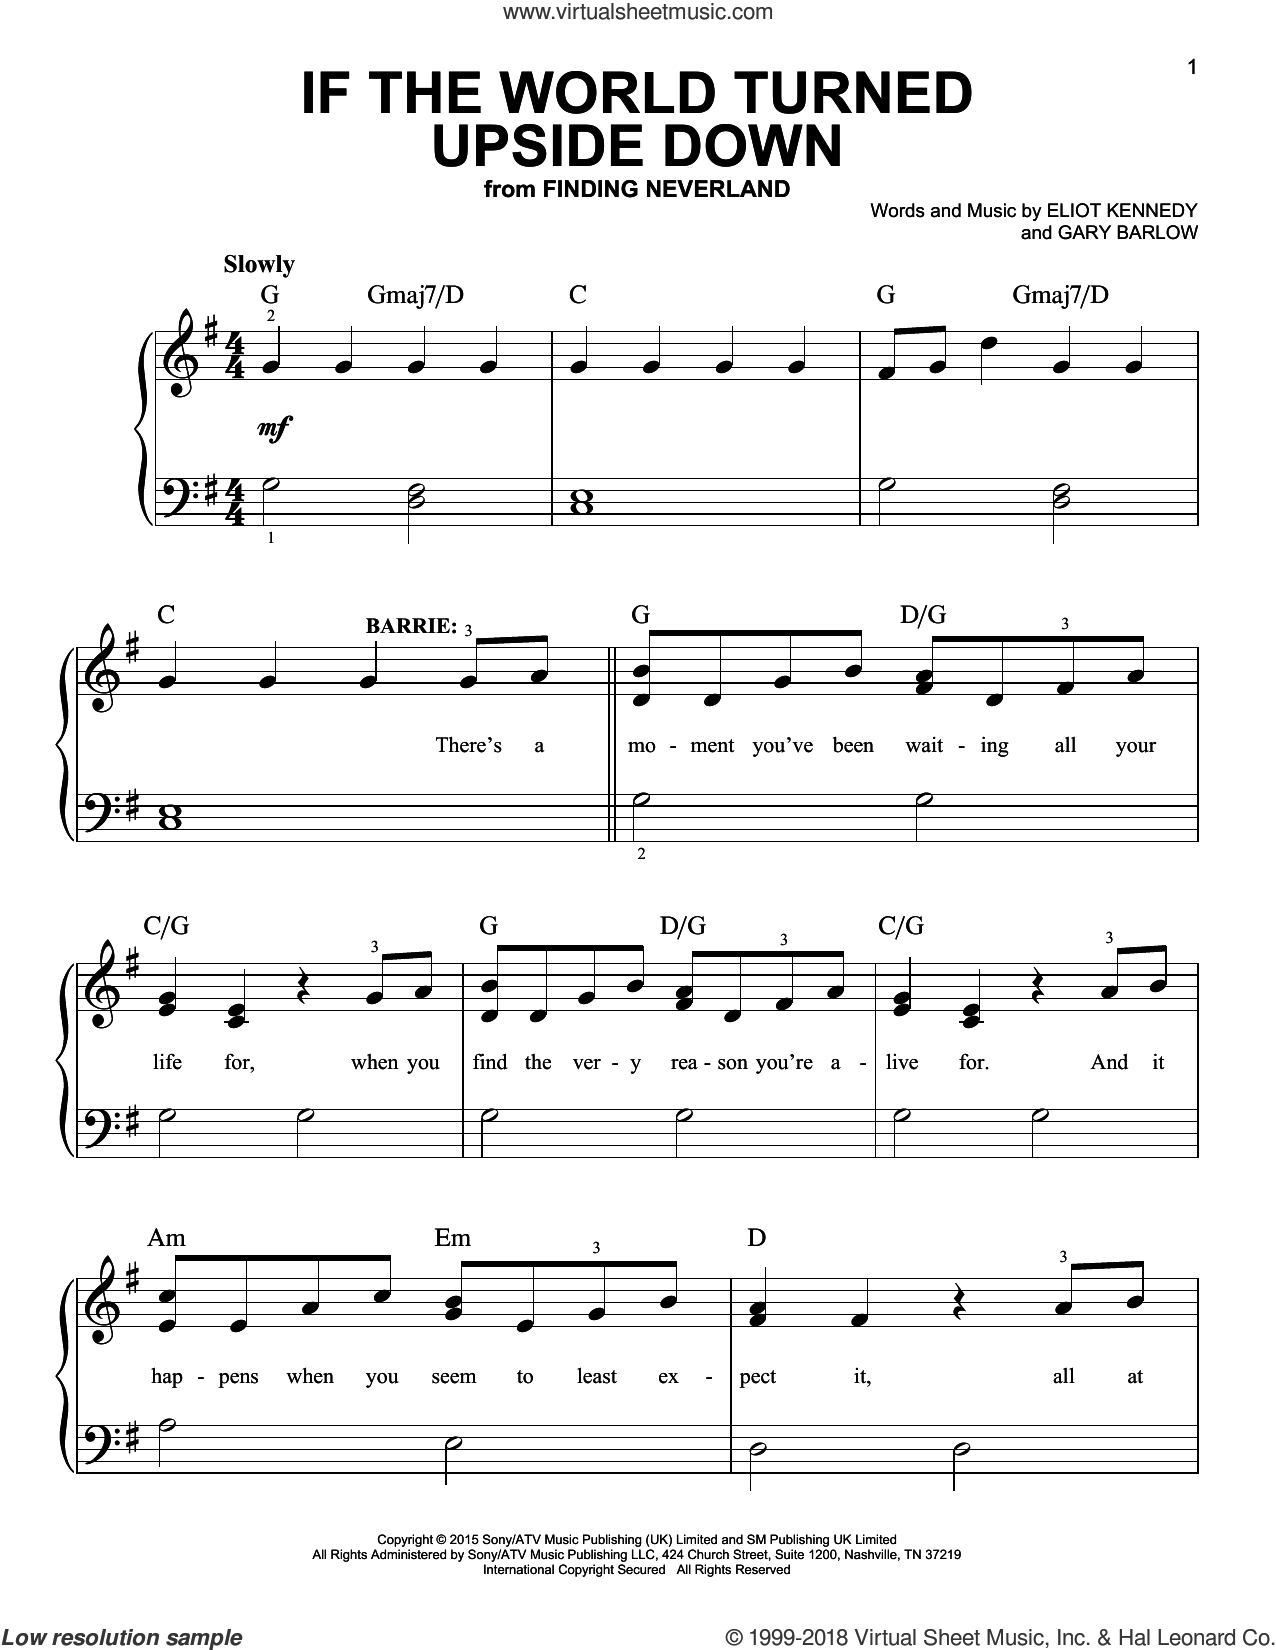 If The World Turned Upside Down sheet music for piano solo by Gary Barlow, Gary Barlow & Eliot Kennedy and Eliot Kennedy. Score Image Preview.